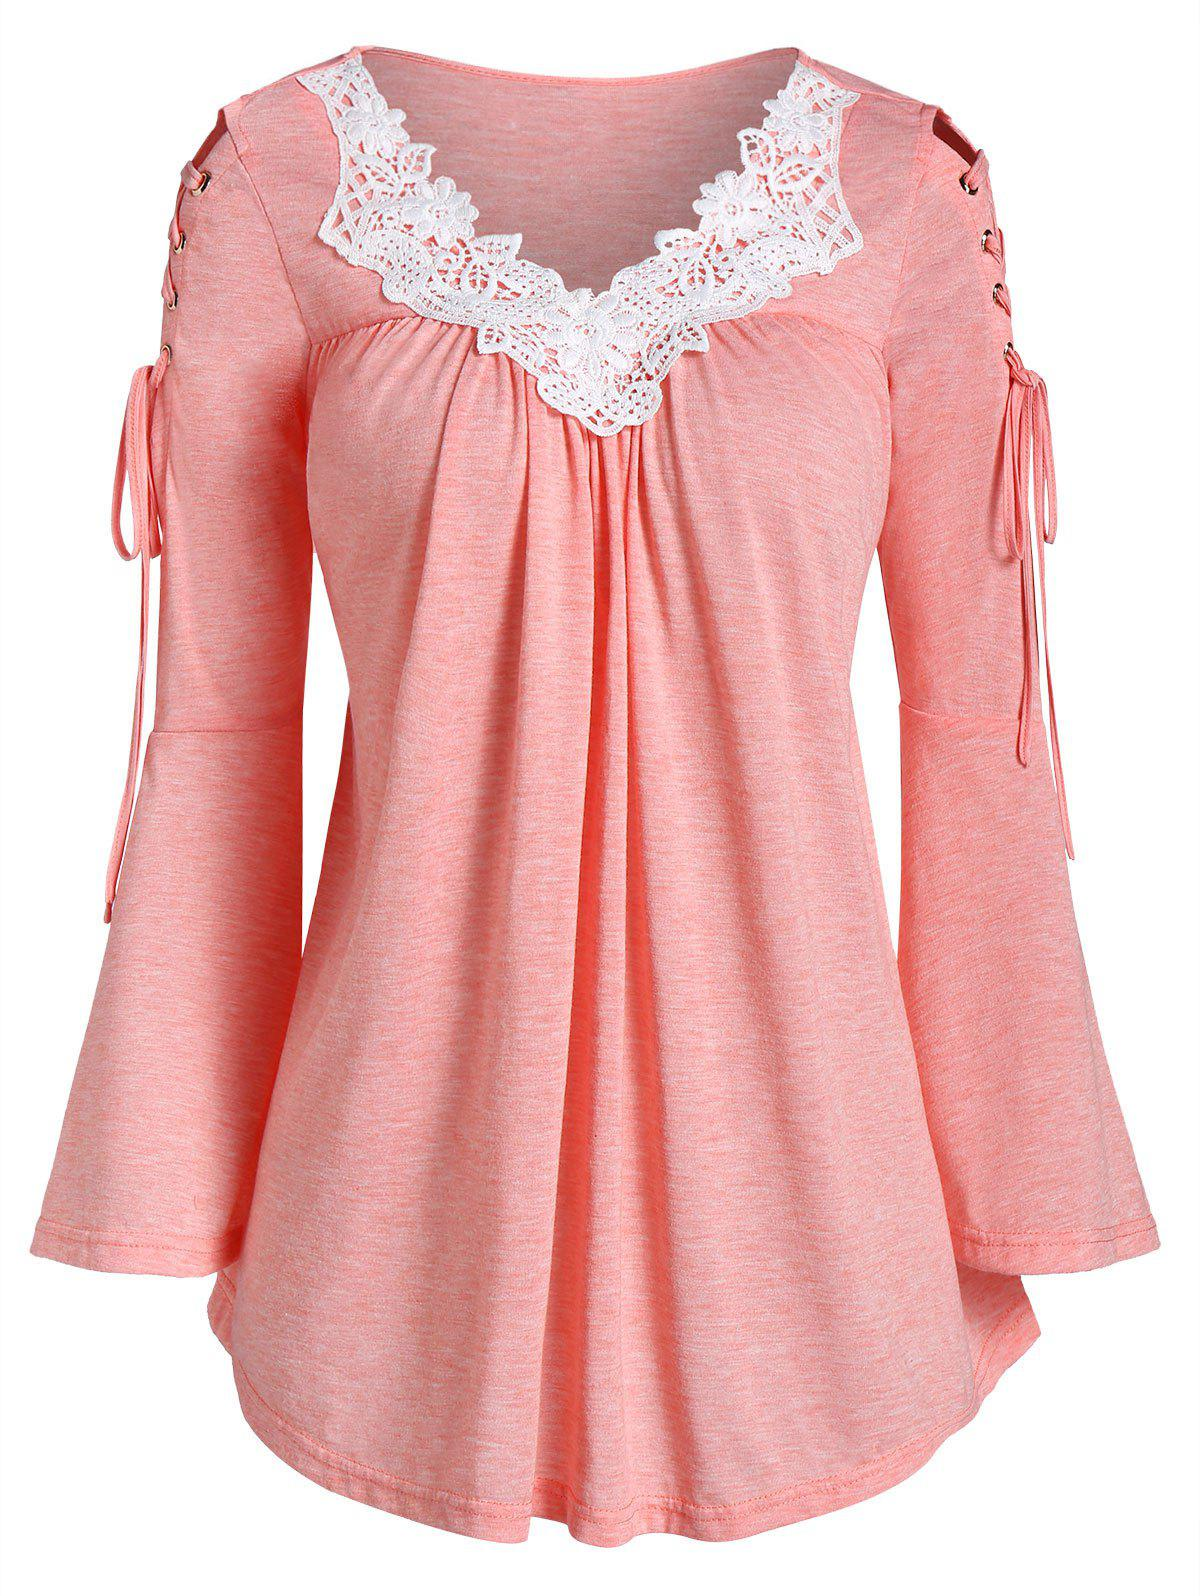 Discount Contrast Lace Lace Up Bell Sleeve T-shirt